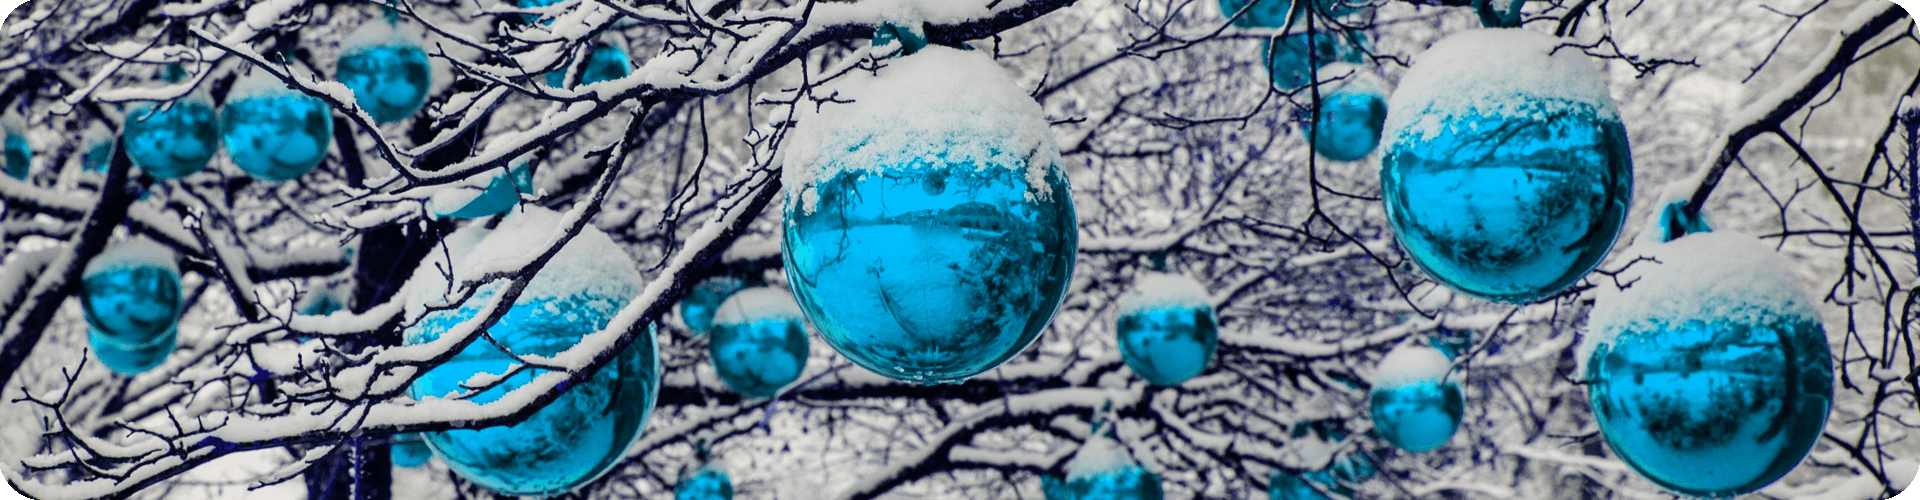 blue snowy christmas baubles hanging from trees